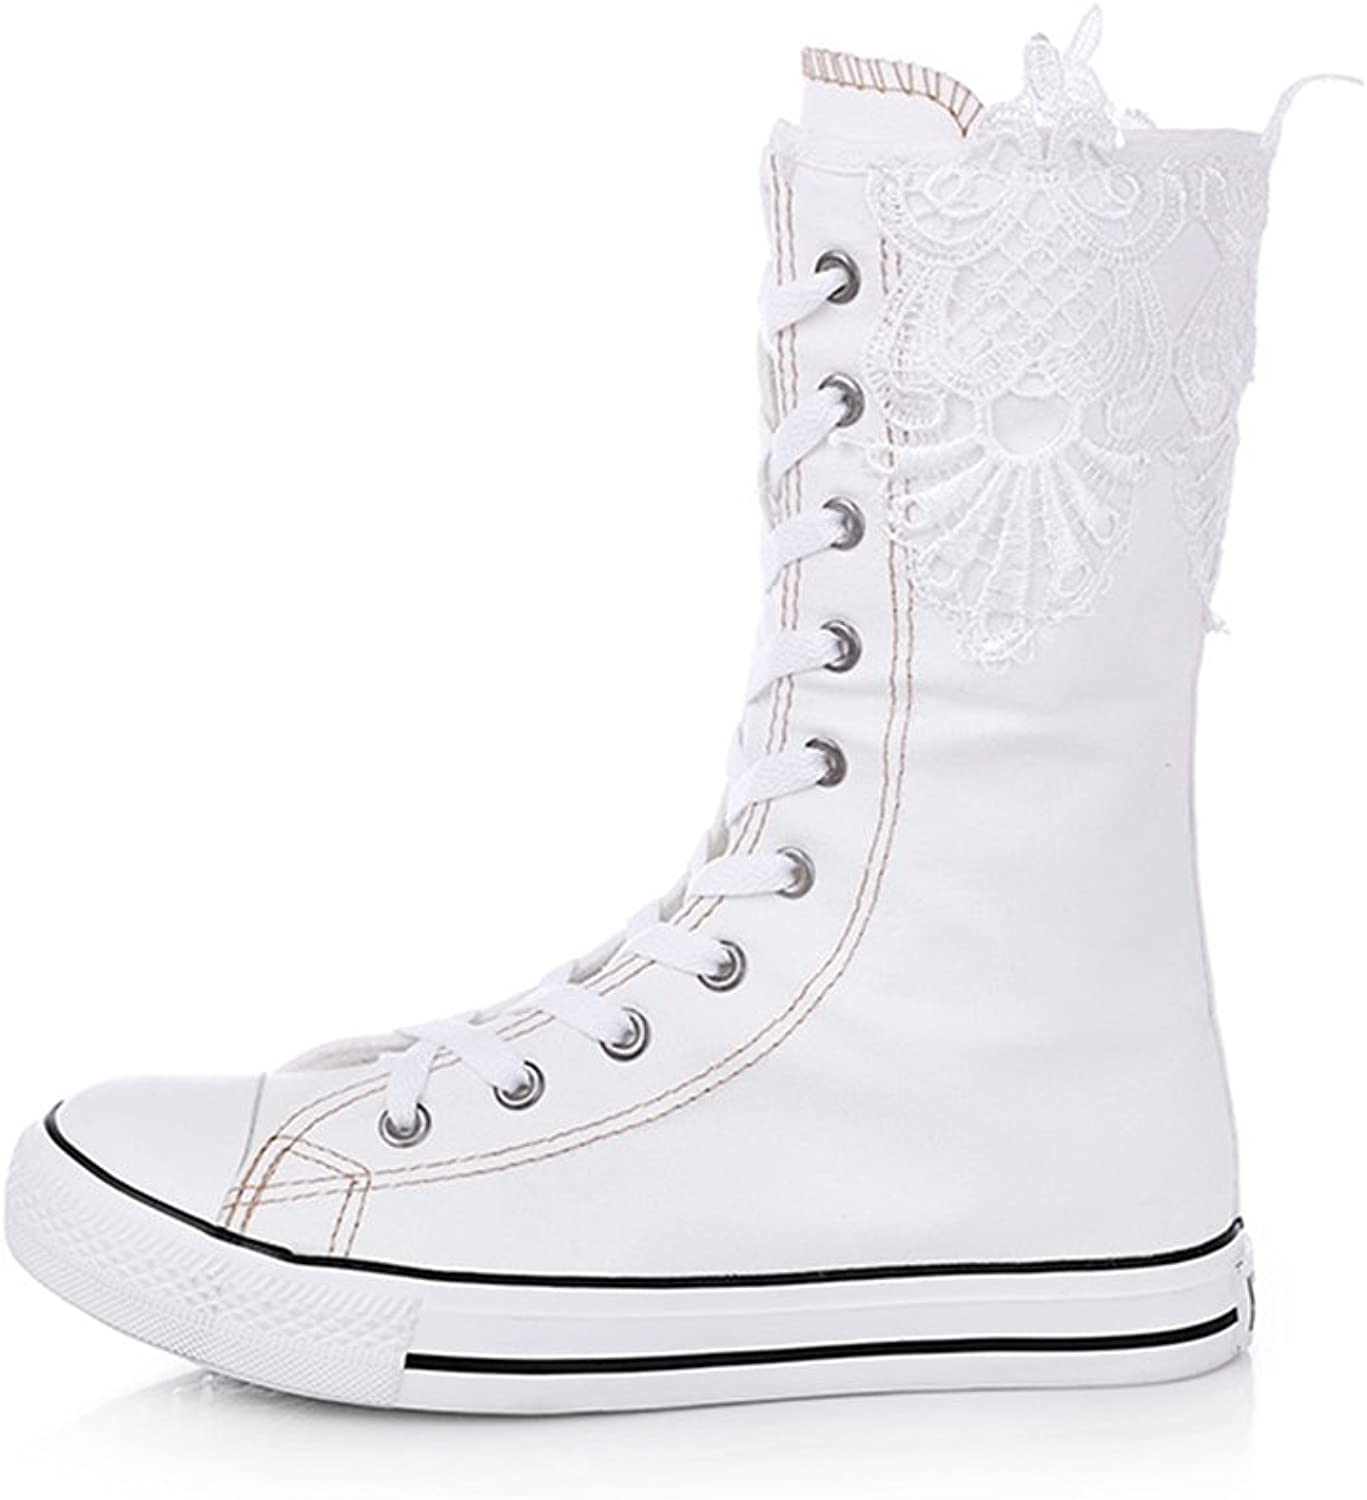 Cloudless Classic High Top Canvas Sneakers for Women Girls Lace up High Boots